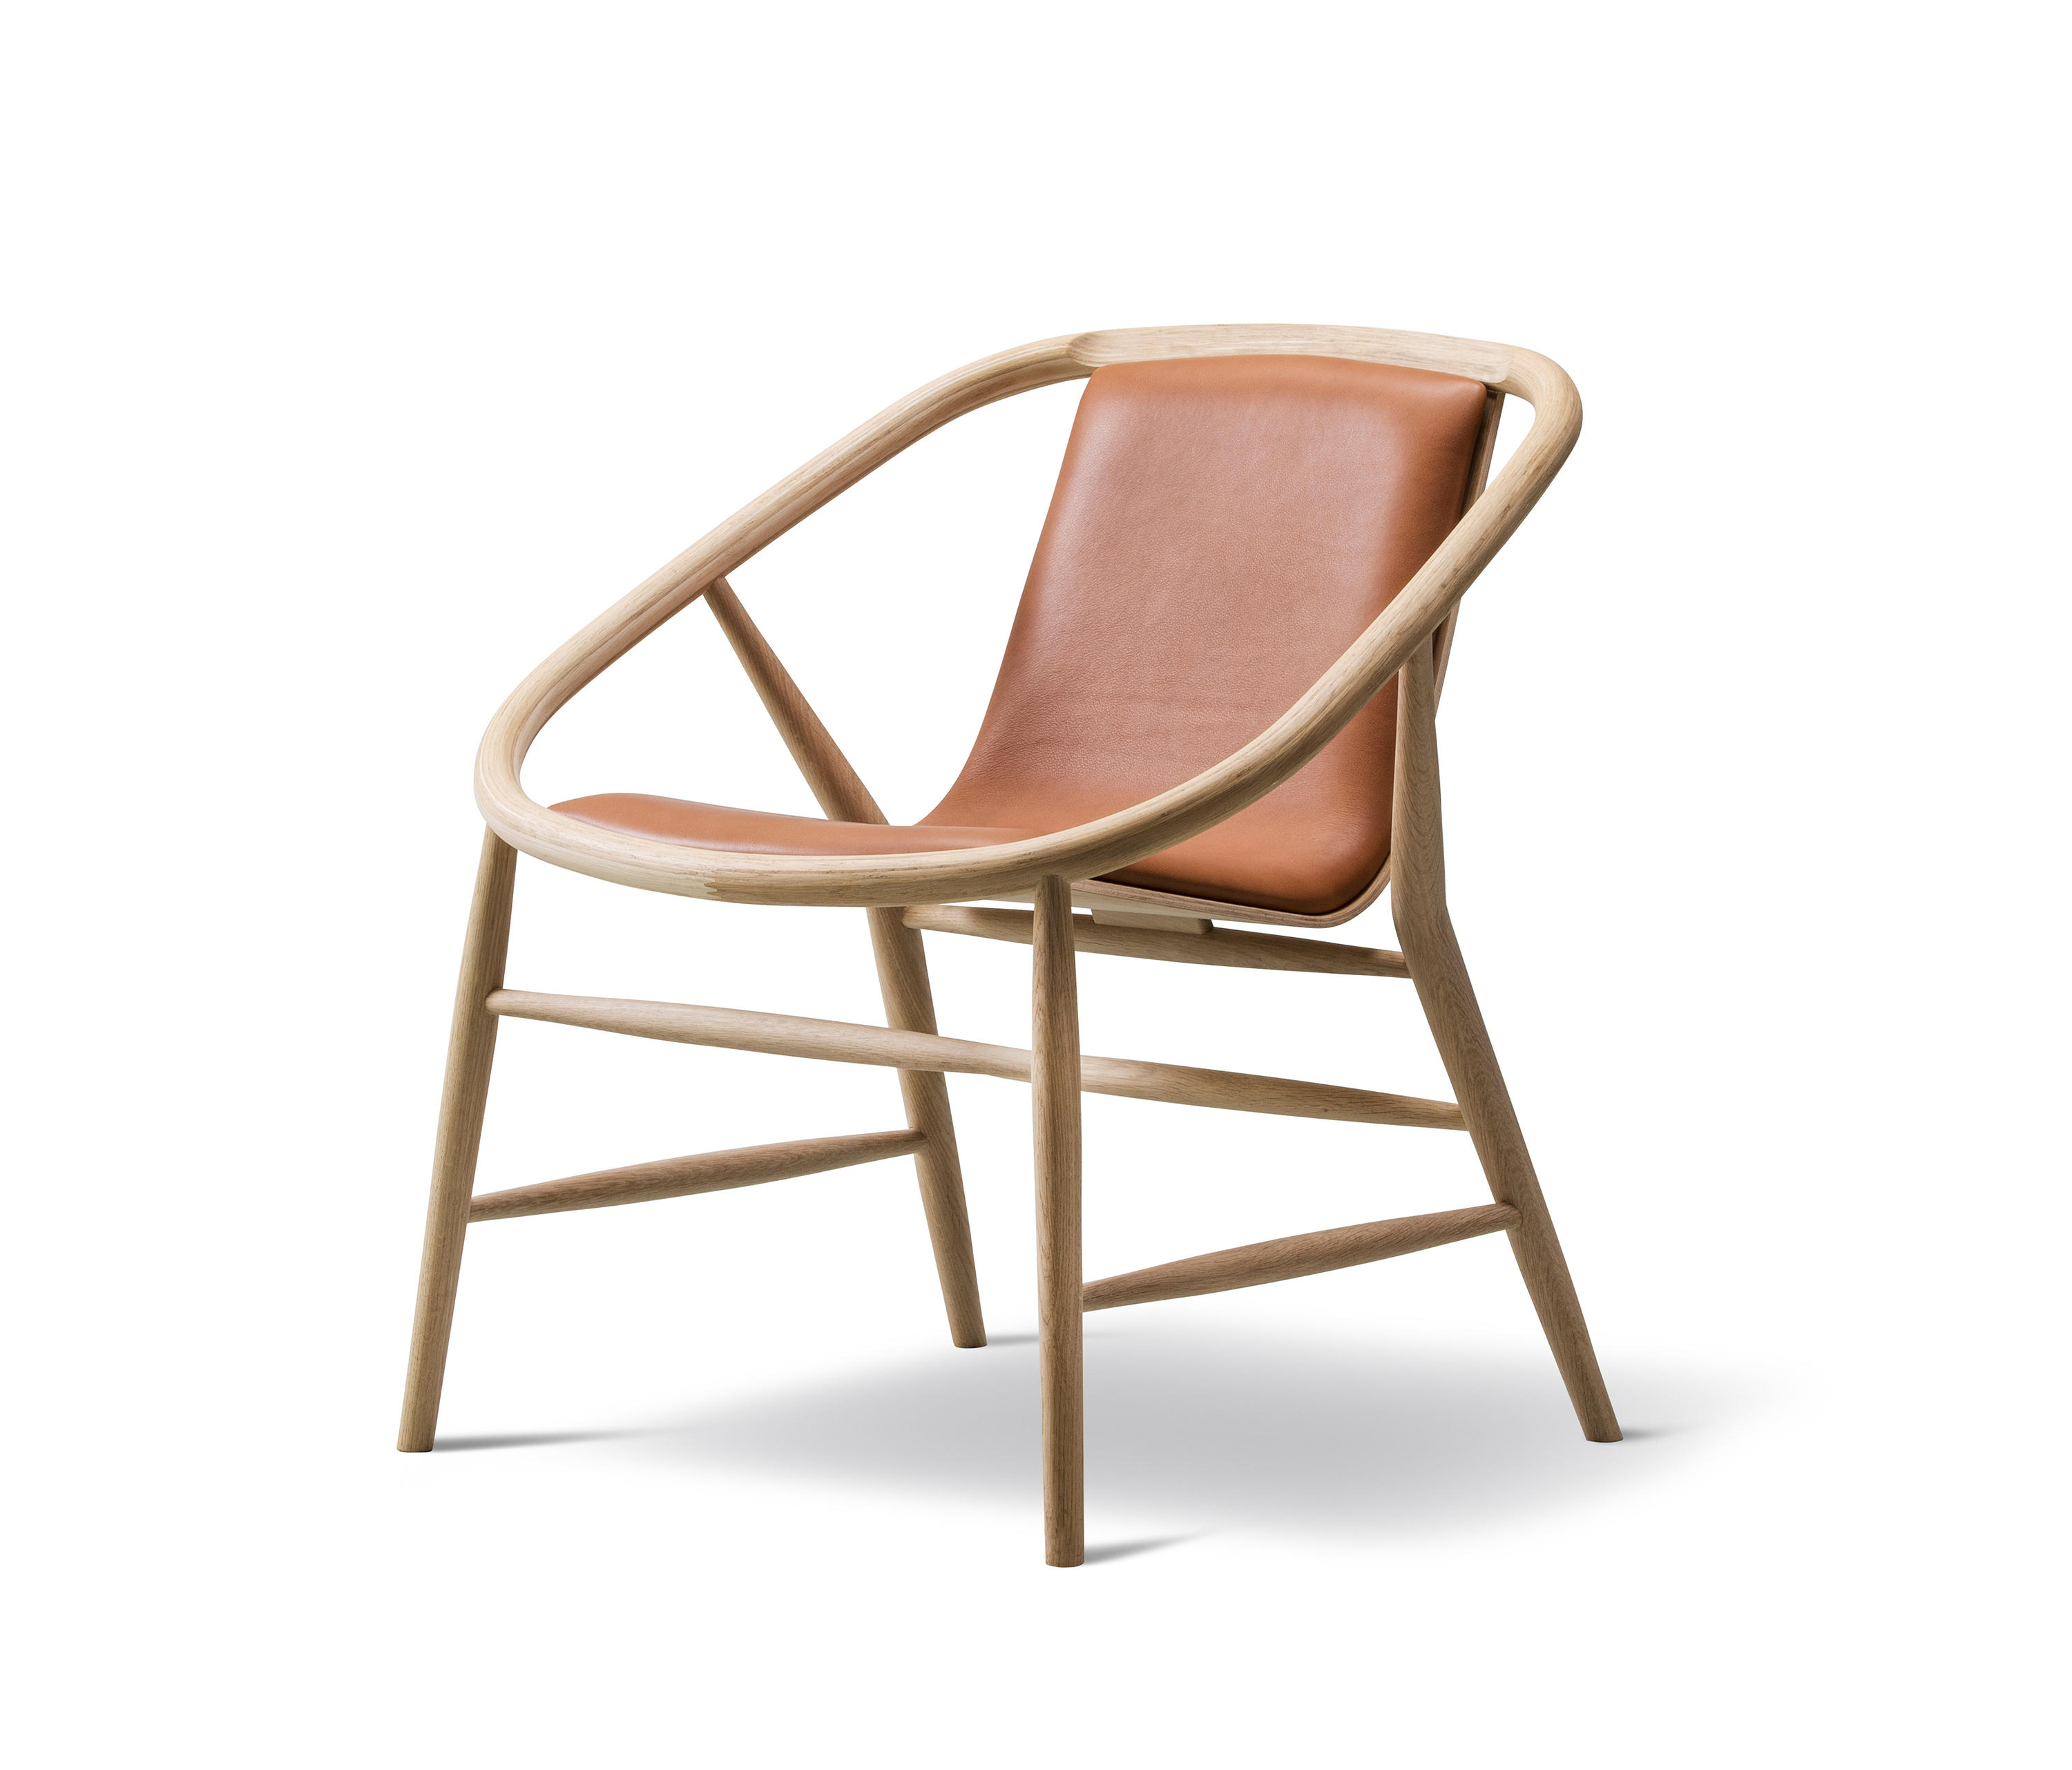 Beau Eve Chair By Fredericia Furniture | Armchairs ...